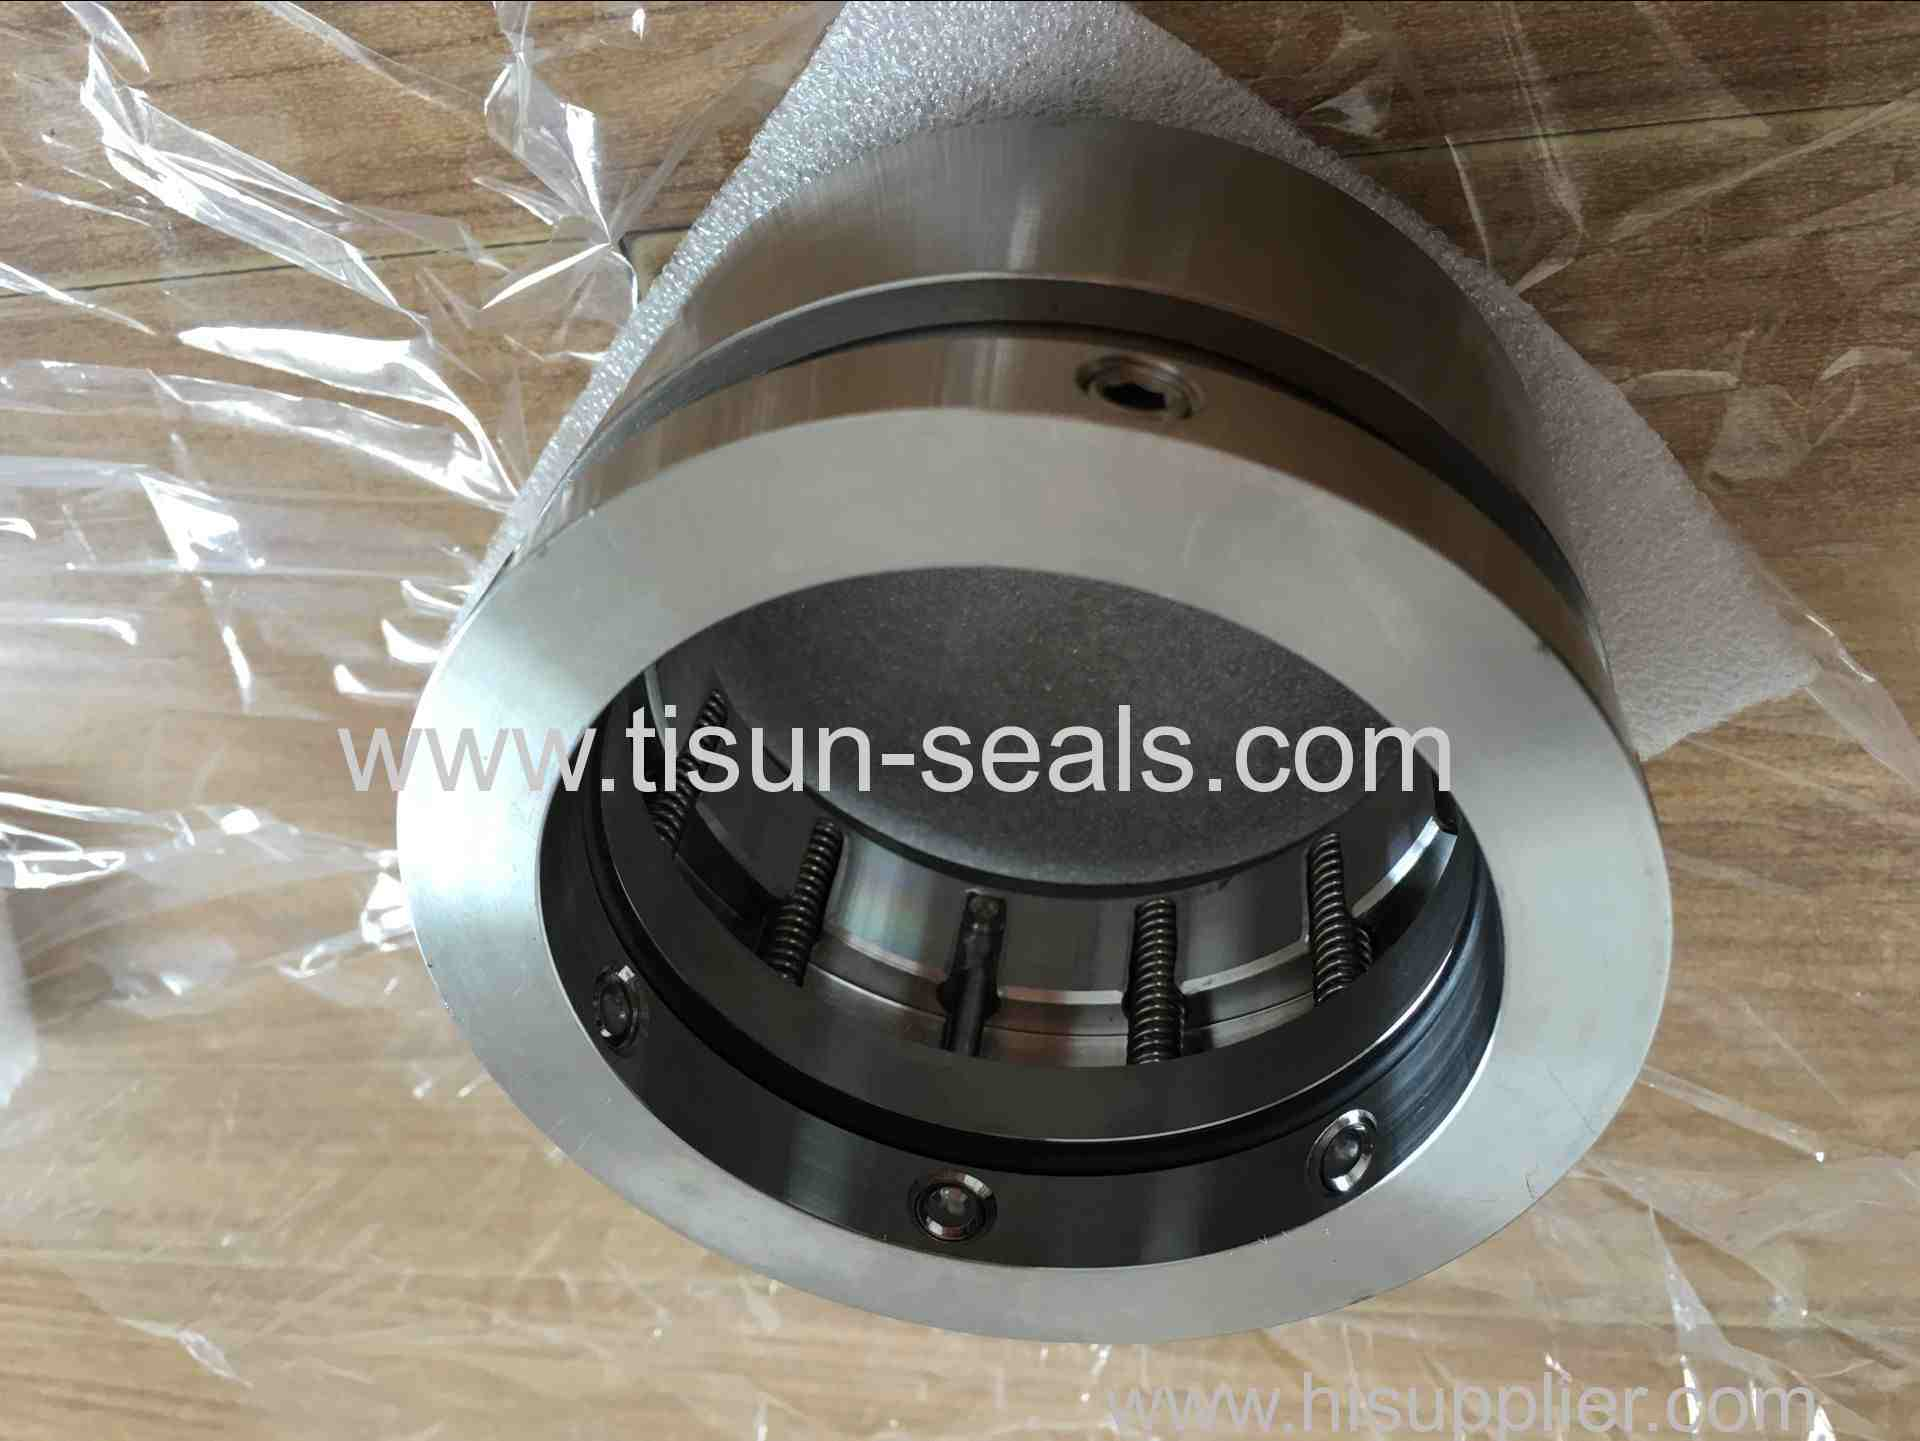 selecting an appropriate mechanical seals